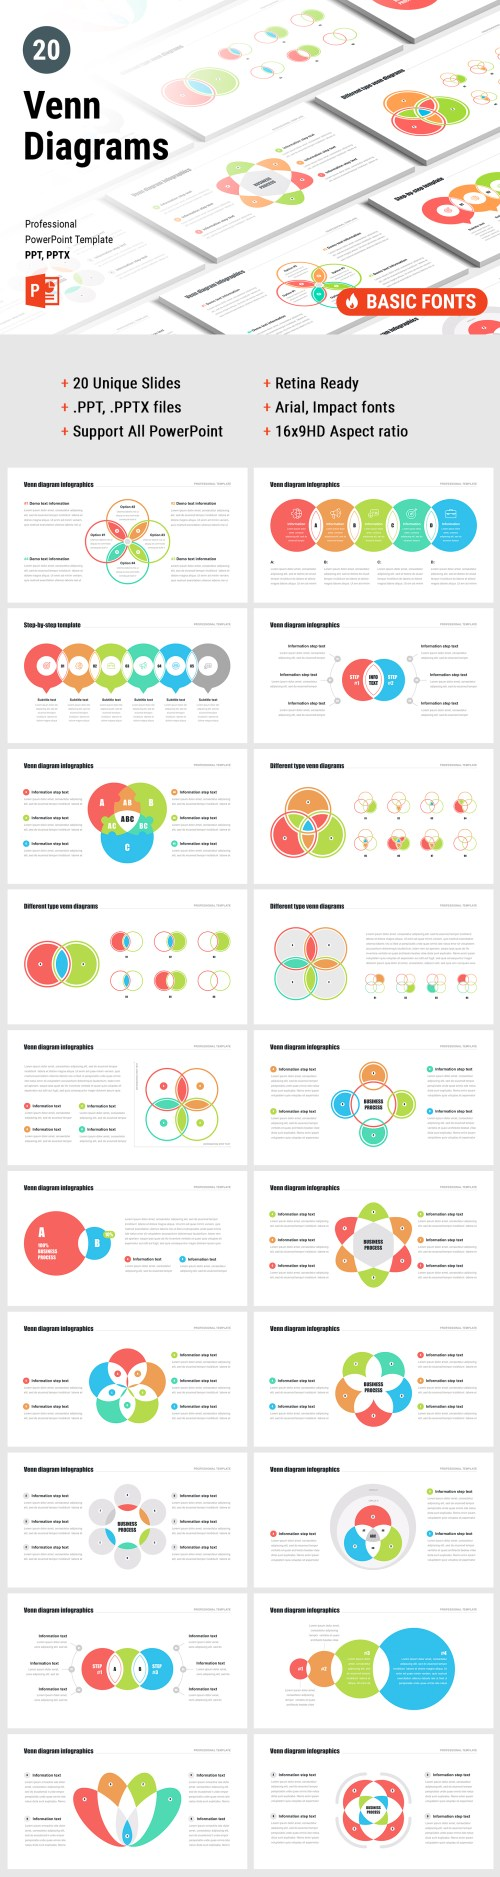 small resolution of venn diagram powerpoint template pack